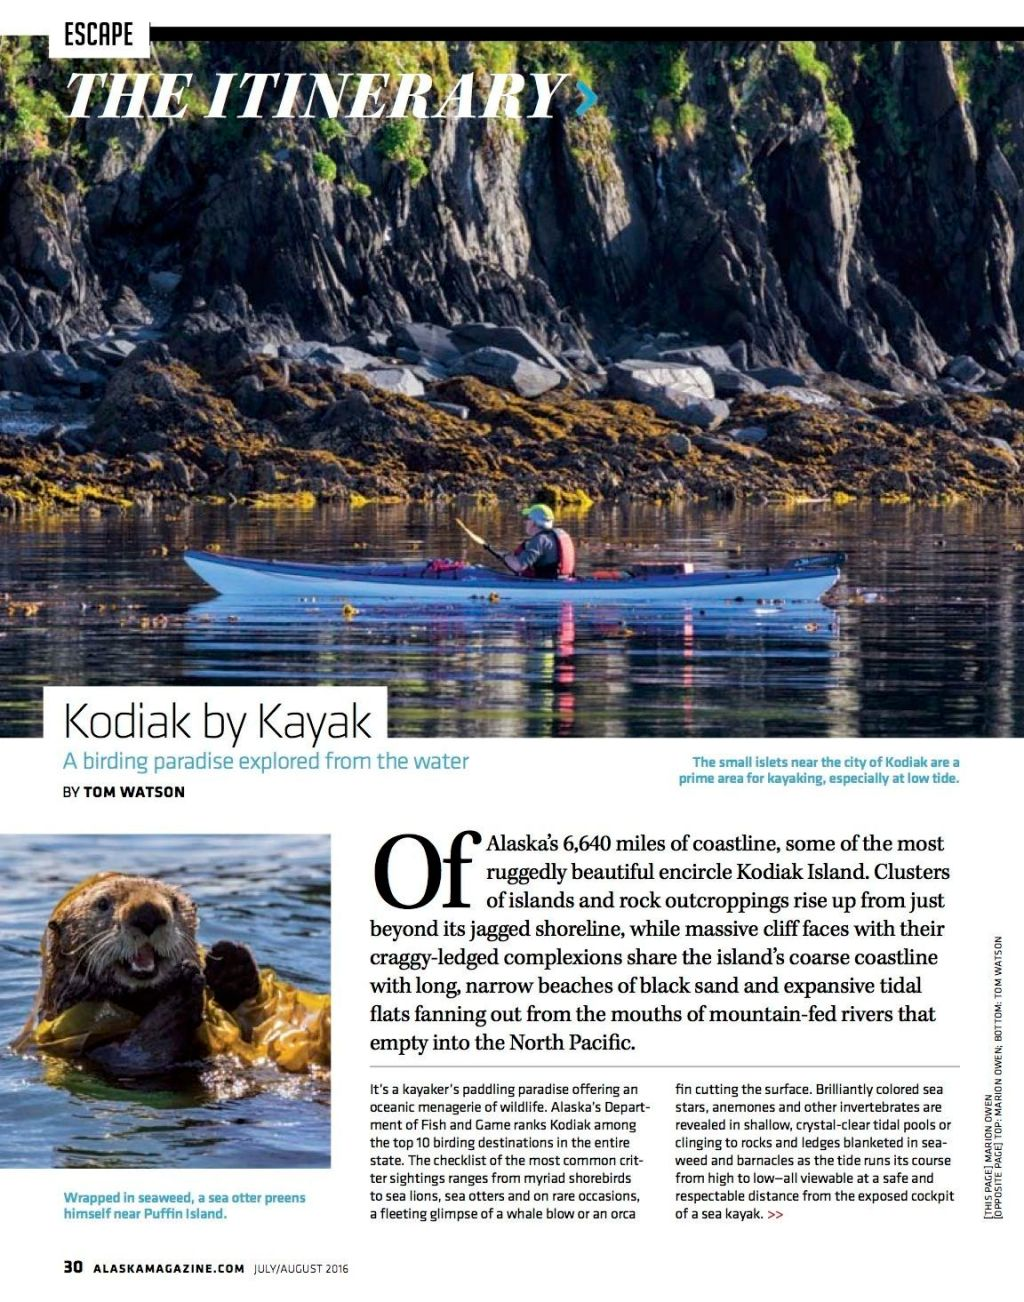 ARTICLE-ALASKA MAG-KODIAK BY KAYAK-1